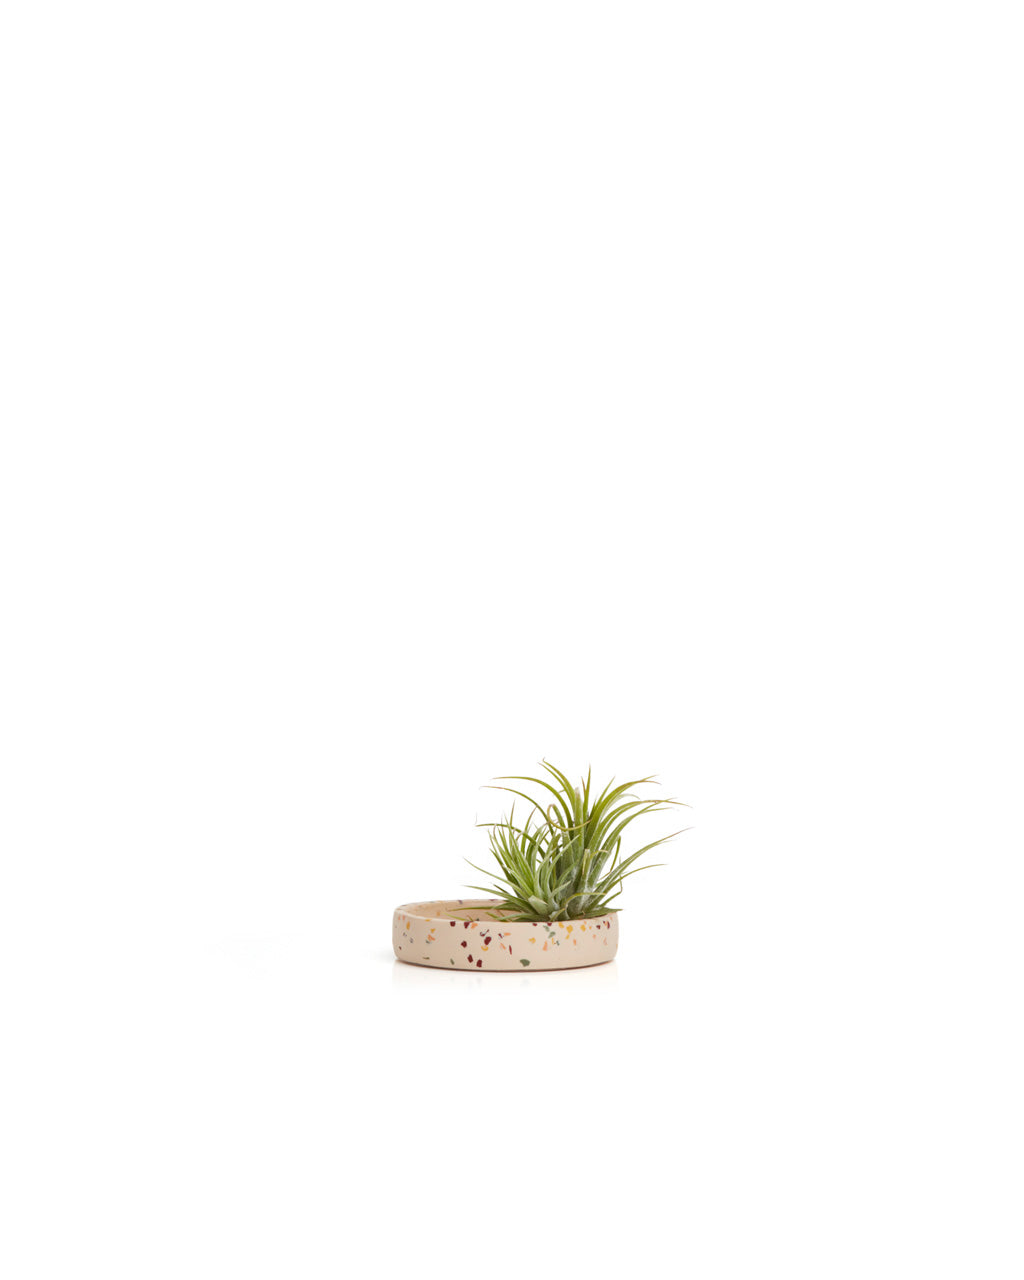 This small tray by Capra Designs comes in a natural beige color.